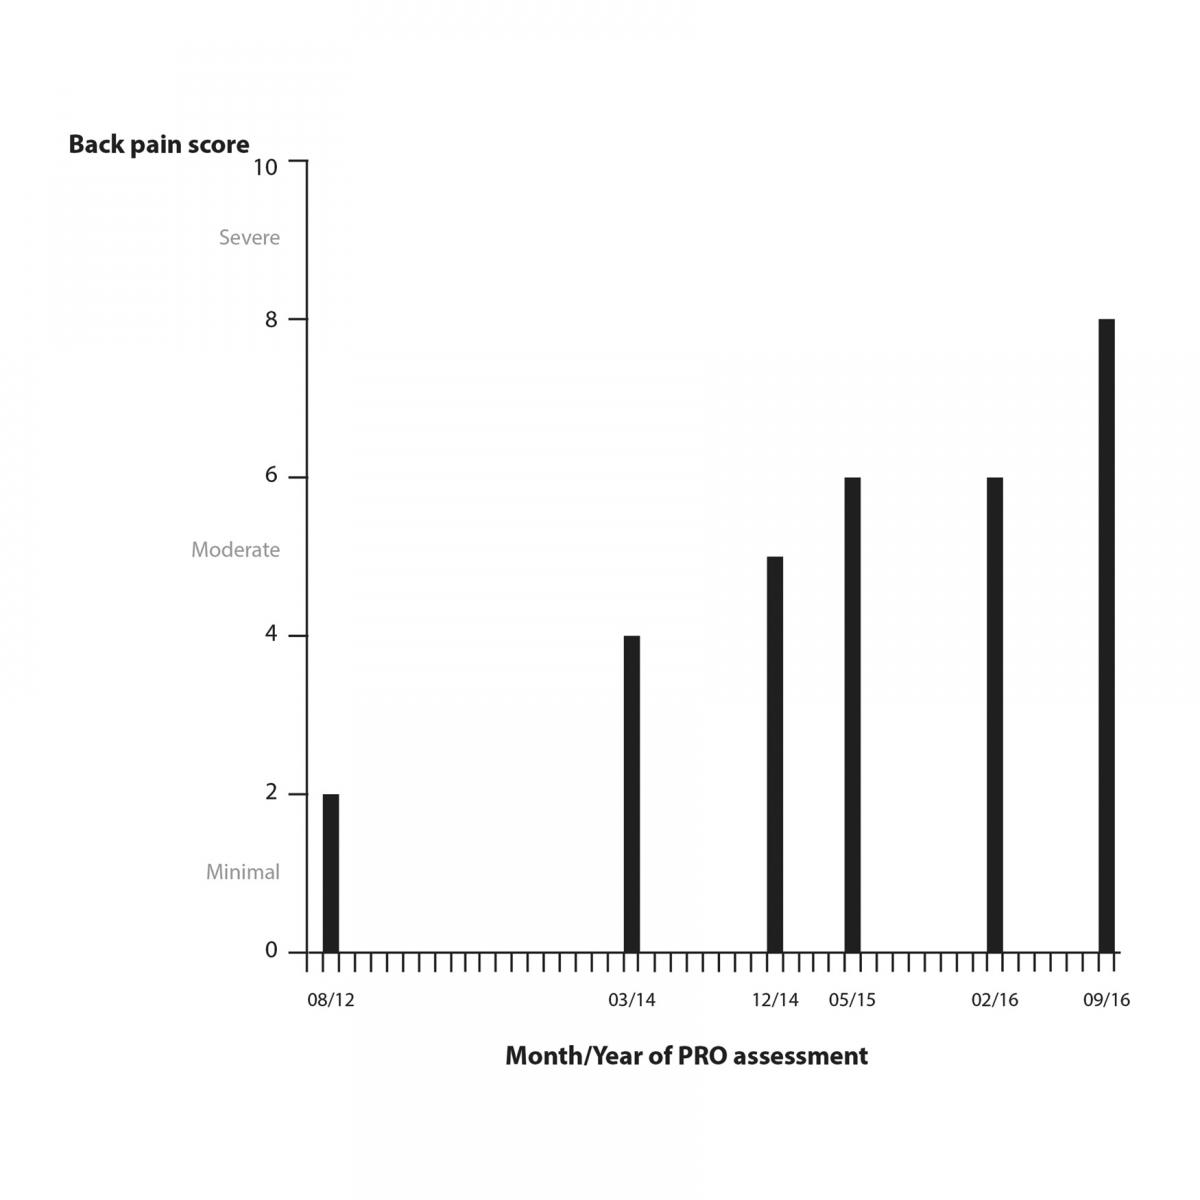 Graphic showing a patient's back pain score over time as a bar graph, with a bar at several places indicating the month/year of a PRO assessment.